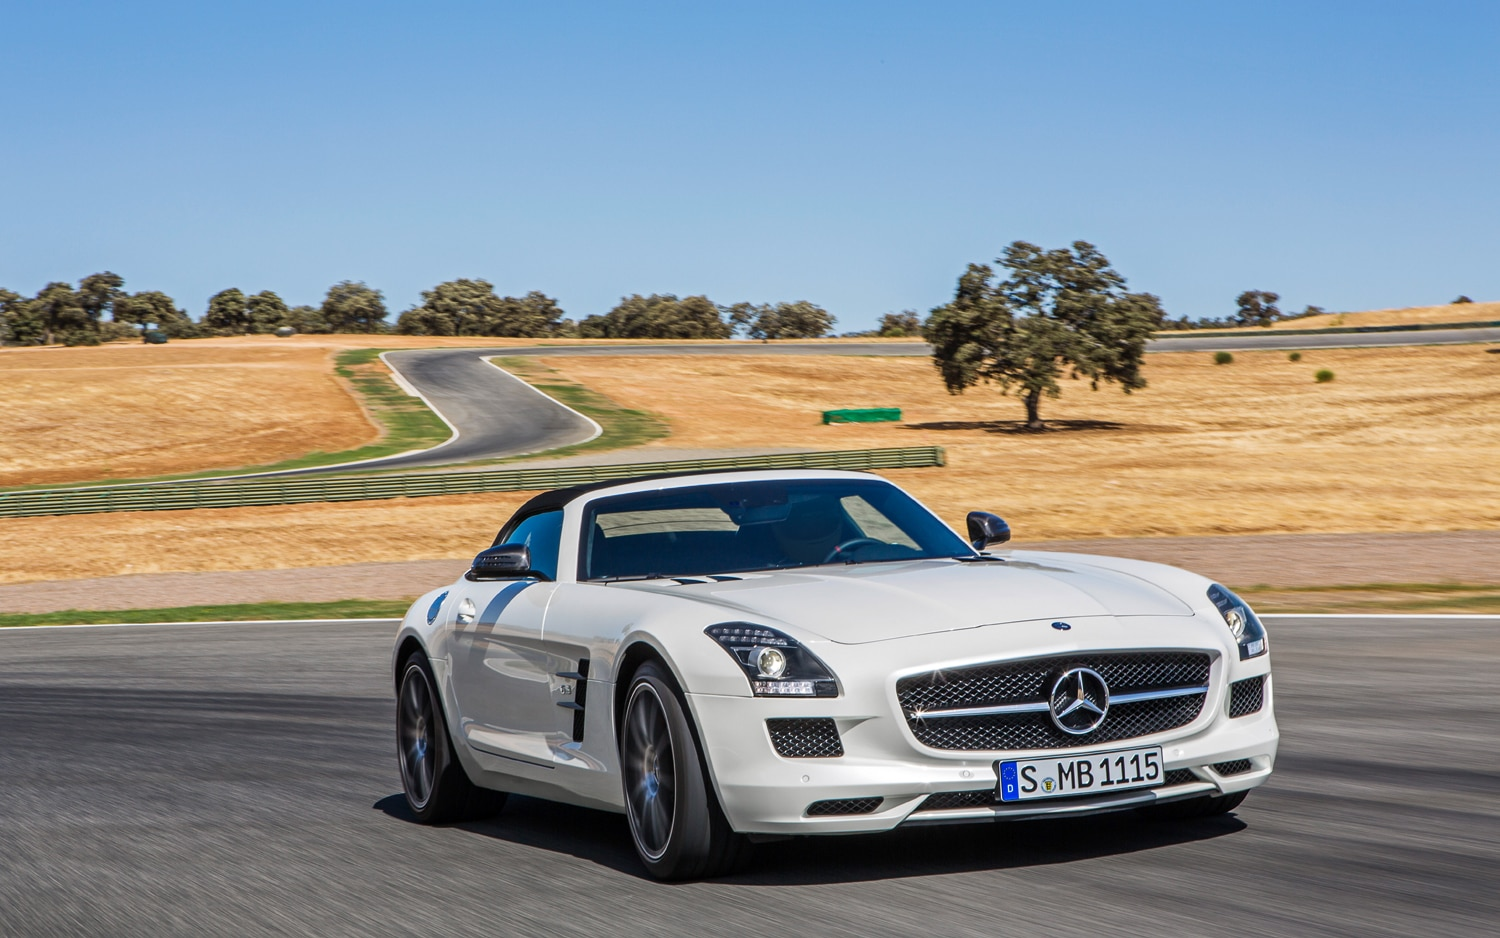 mercedes benz shows off 2013 sls amg gt in new photos. Black Bedroom Furniture Sets. Home Design Ideas